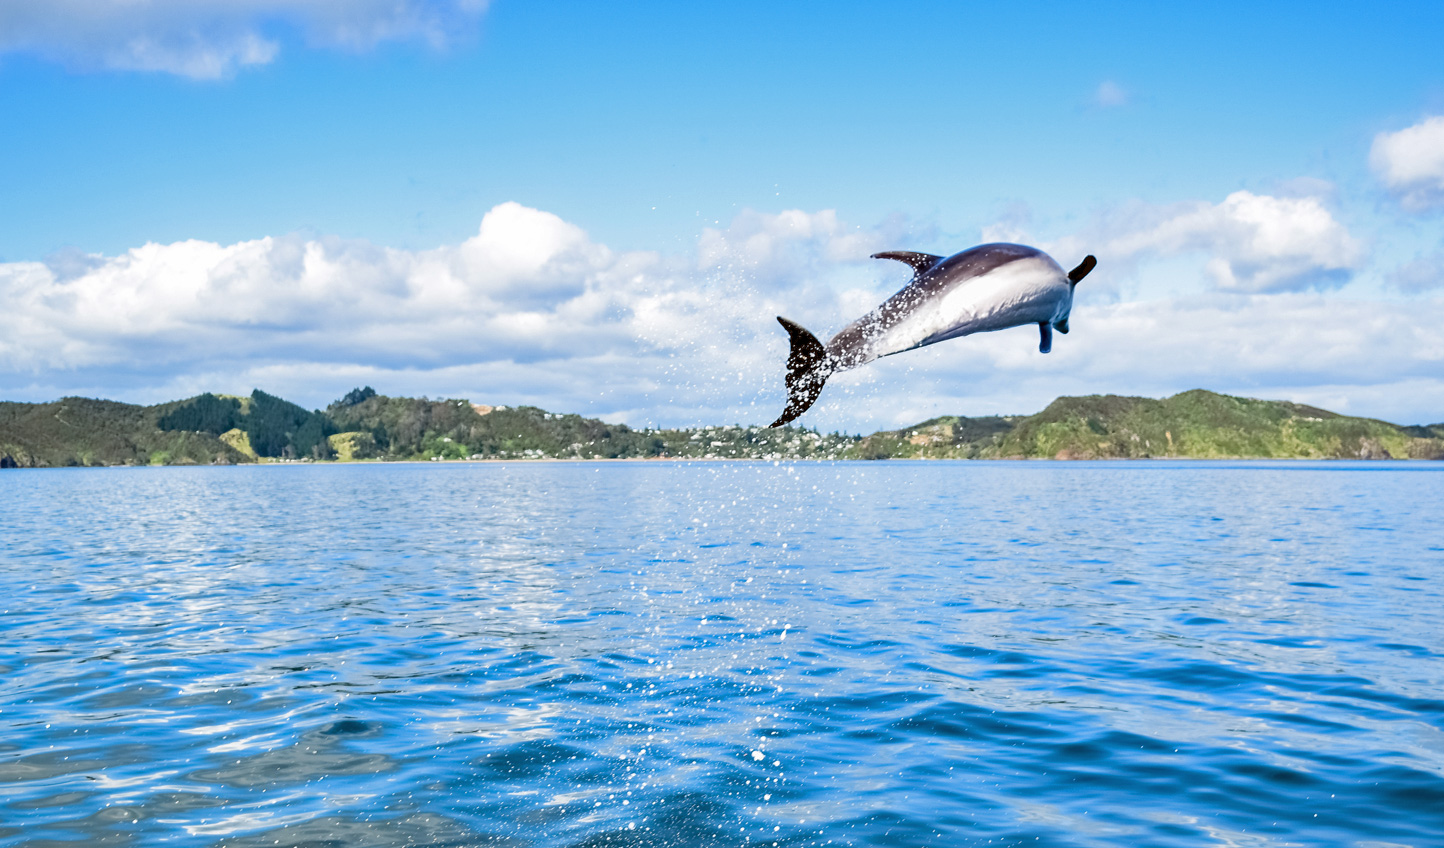 Head out onto the water and watch dolphins barrel through the air